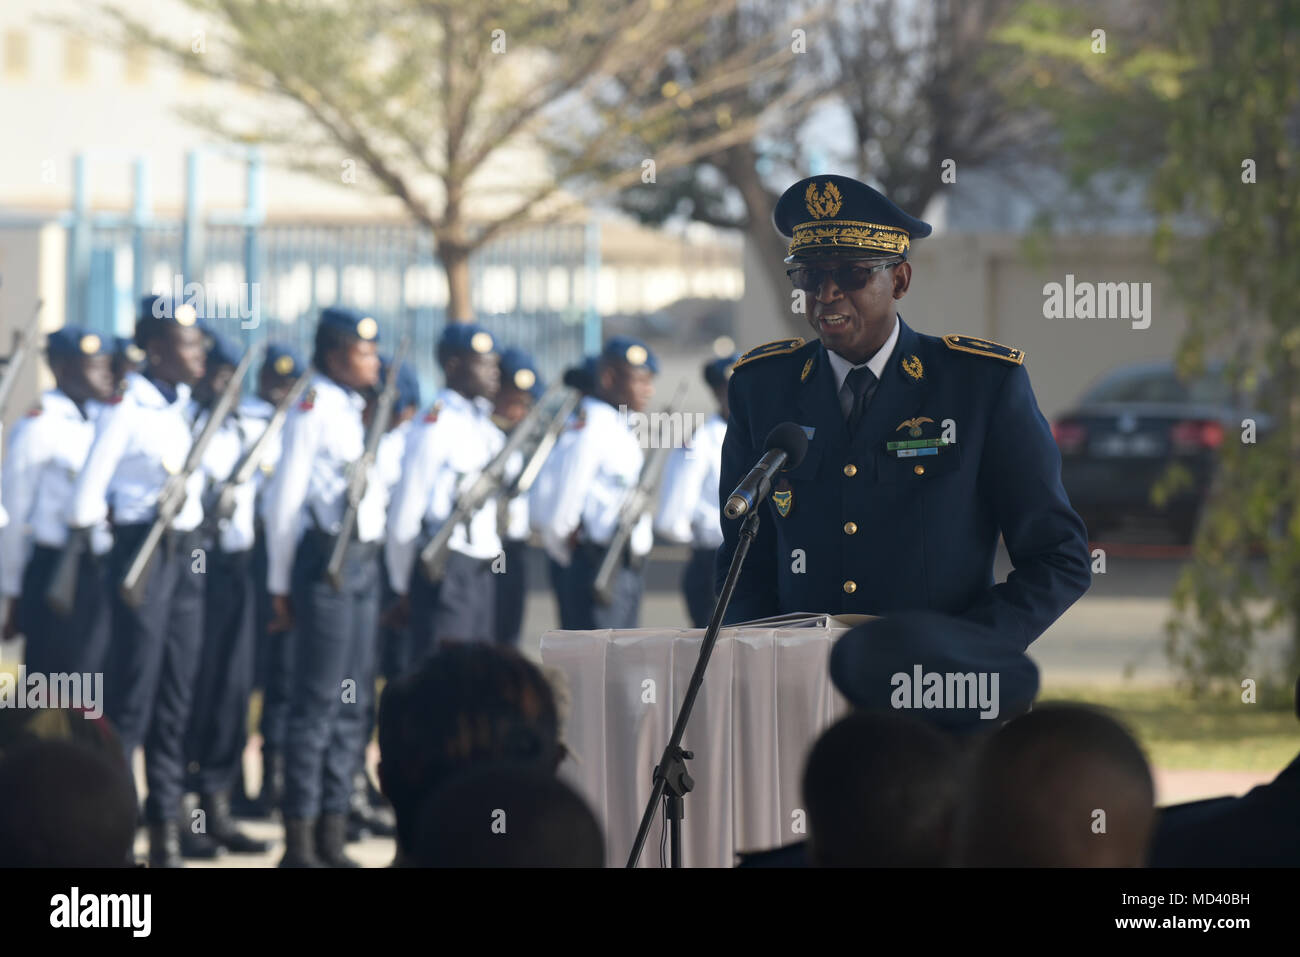 Senegalese Brig. Gen. Joseph Diop, Senegal air force Chief of Staff, speaks during the opening ceremony of African Partnership Flight Senegal at Captain Andalla Cissé Air Base, Senegal, March 19, 2018. The purpose of APF Senegal is to conduct multilateral, military-to-military engagements and security assistance with African air forces. (U.S. Air Force photo by Airman 1st Class Eli Chevalier) - Stock Image